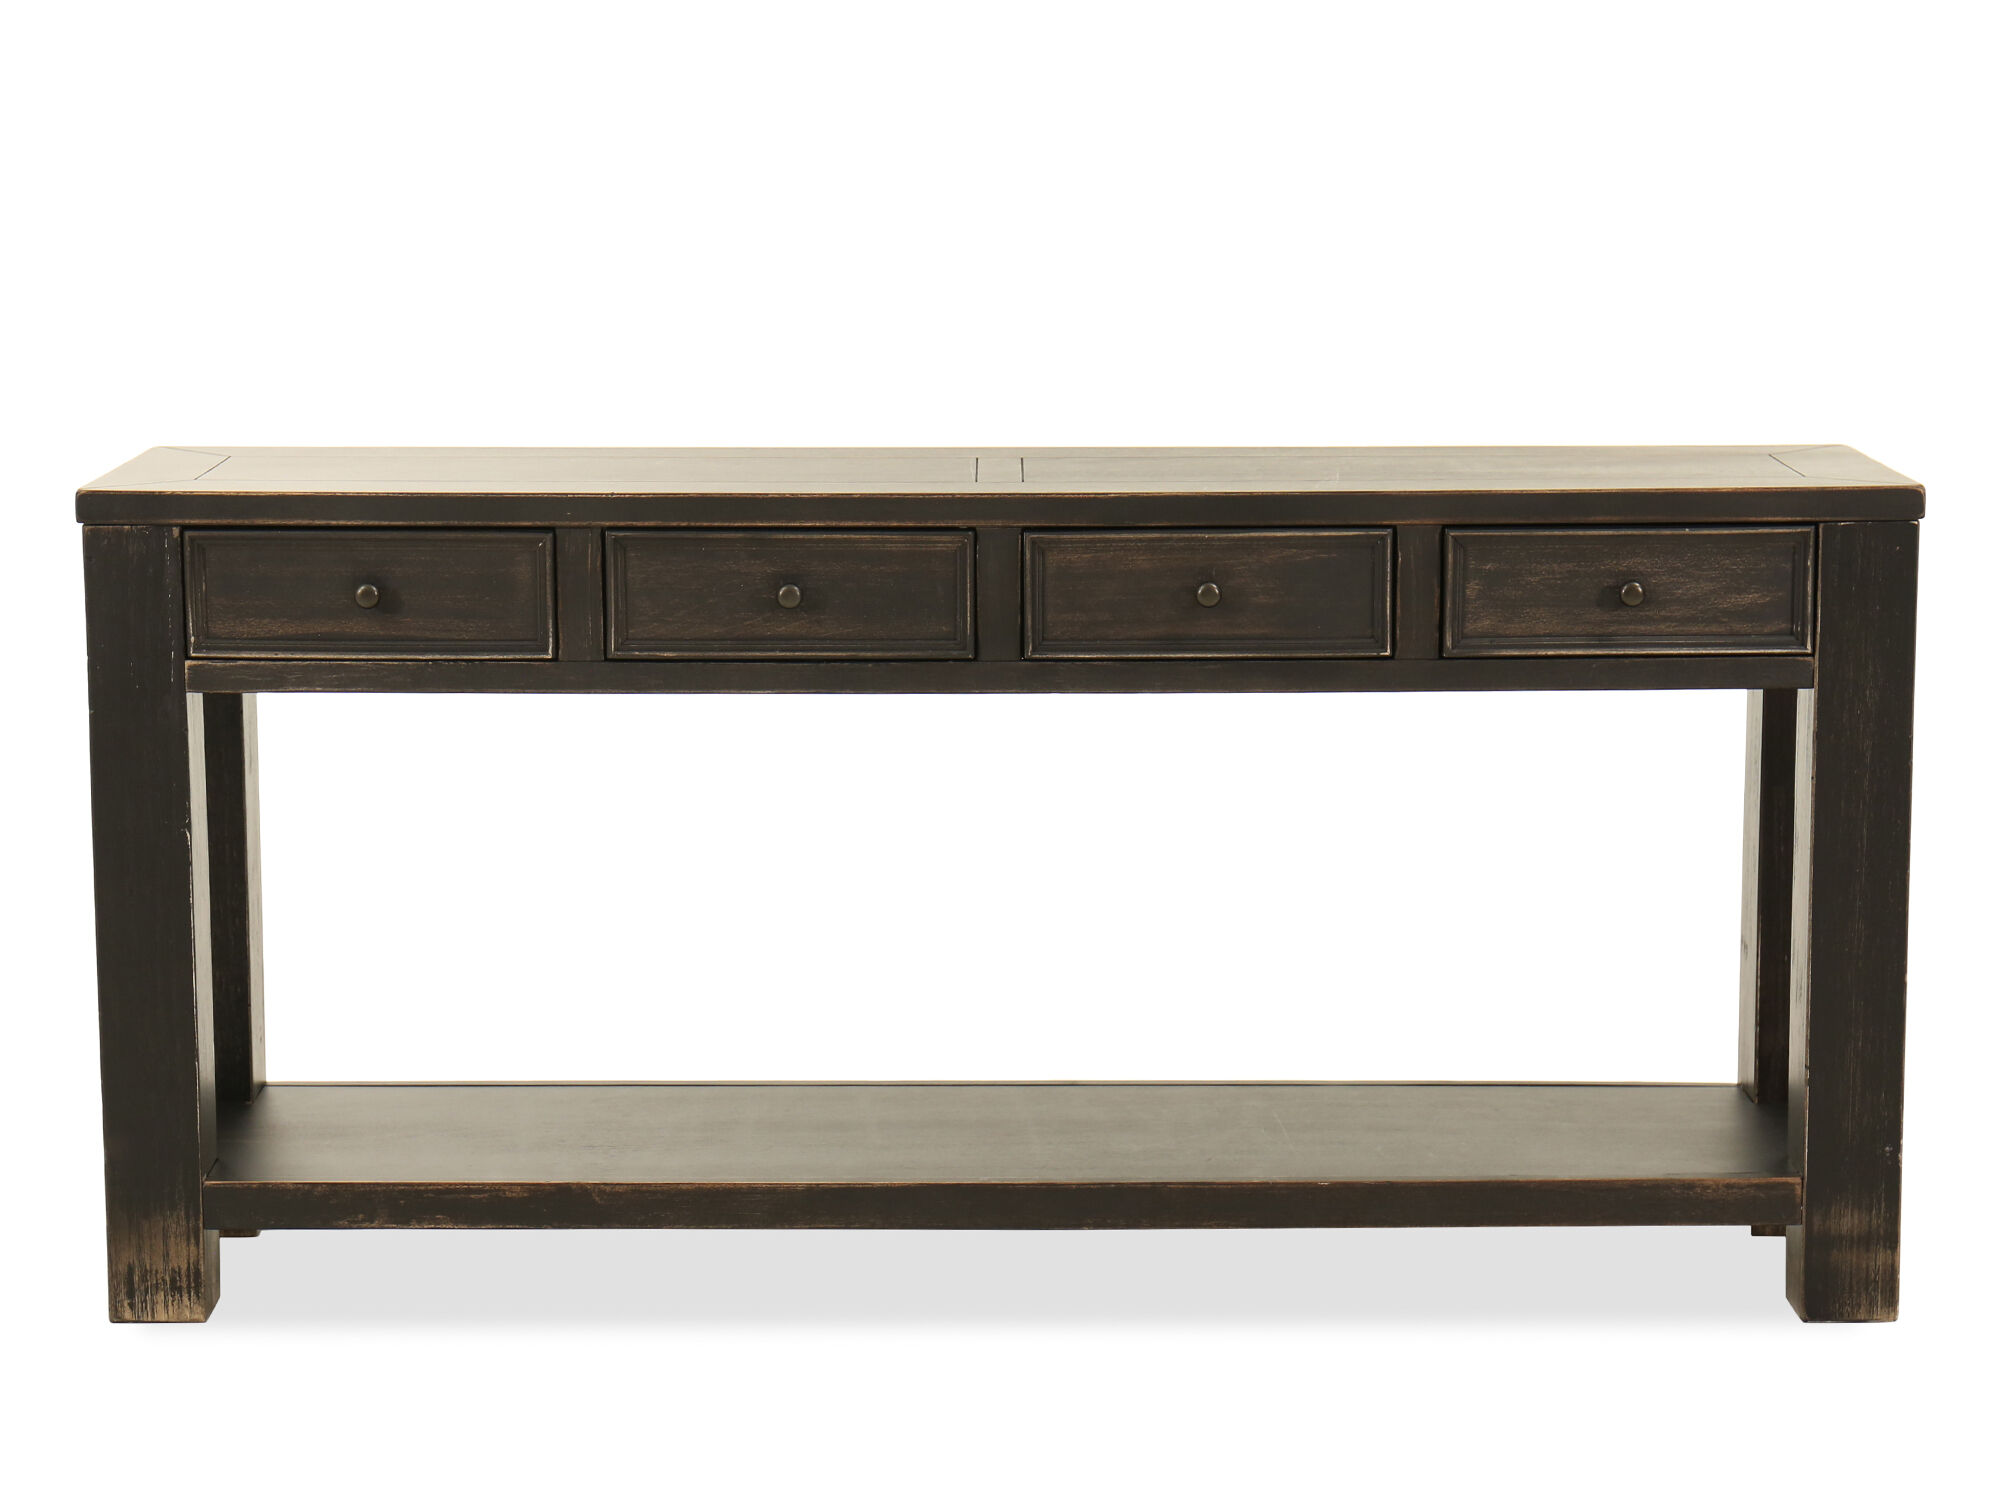 addison sofa ashley furniture john lewis todd review table drawers living room narrow wood console ...